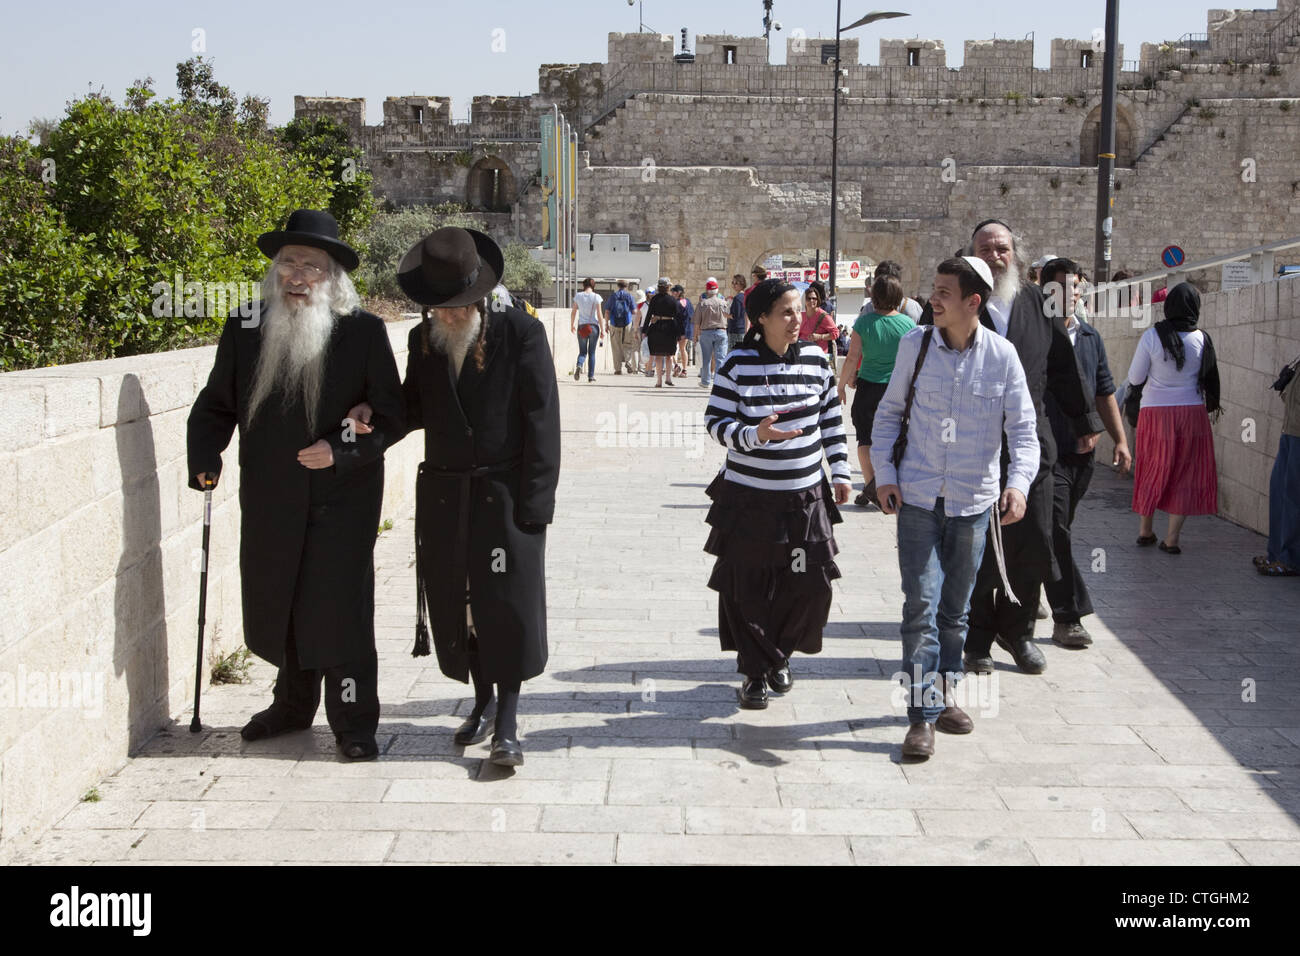 Tourists, pilgrims, and people of the Jewish faith walking to the Western Wall in the Old City of Jerusalem, Israel - Stock Image